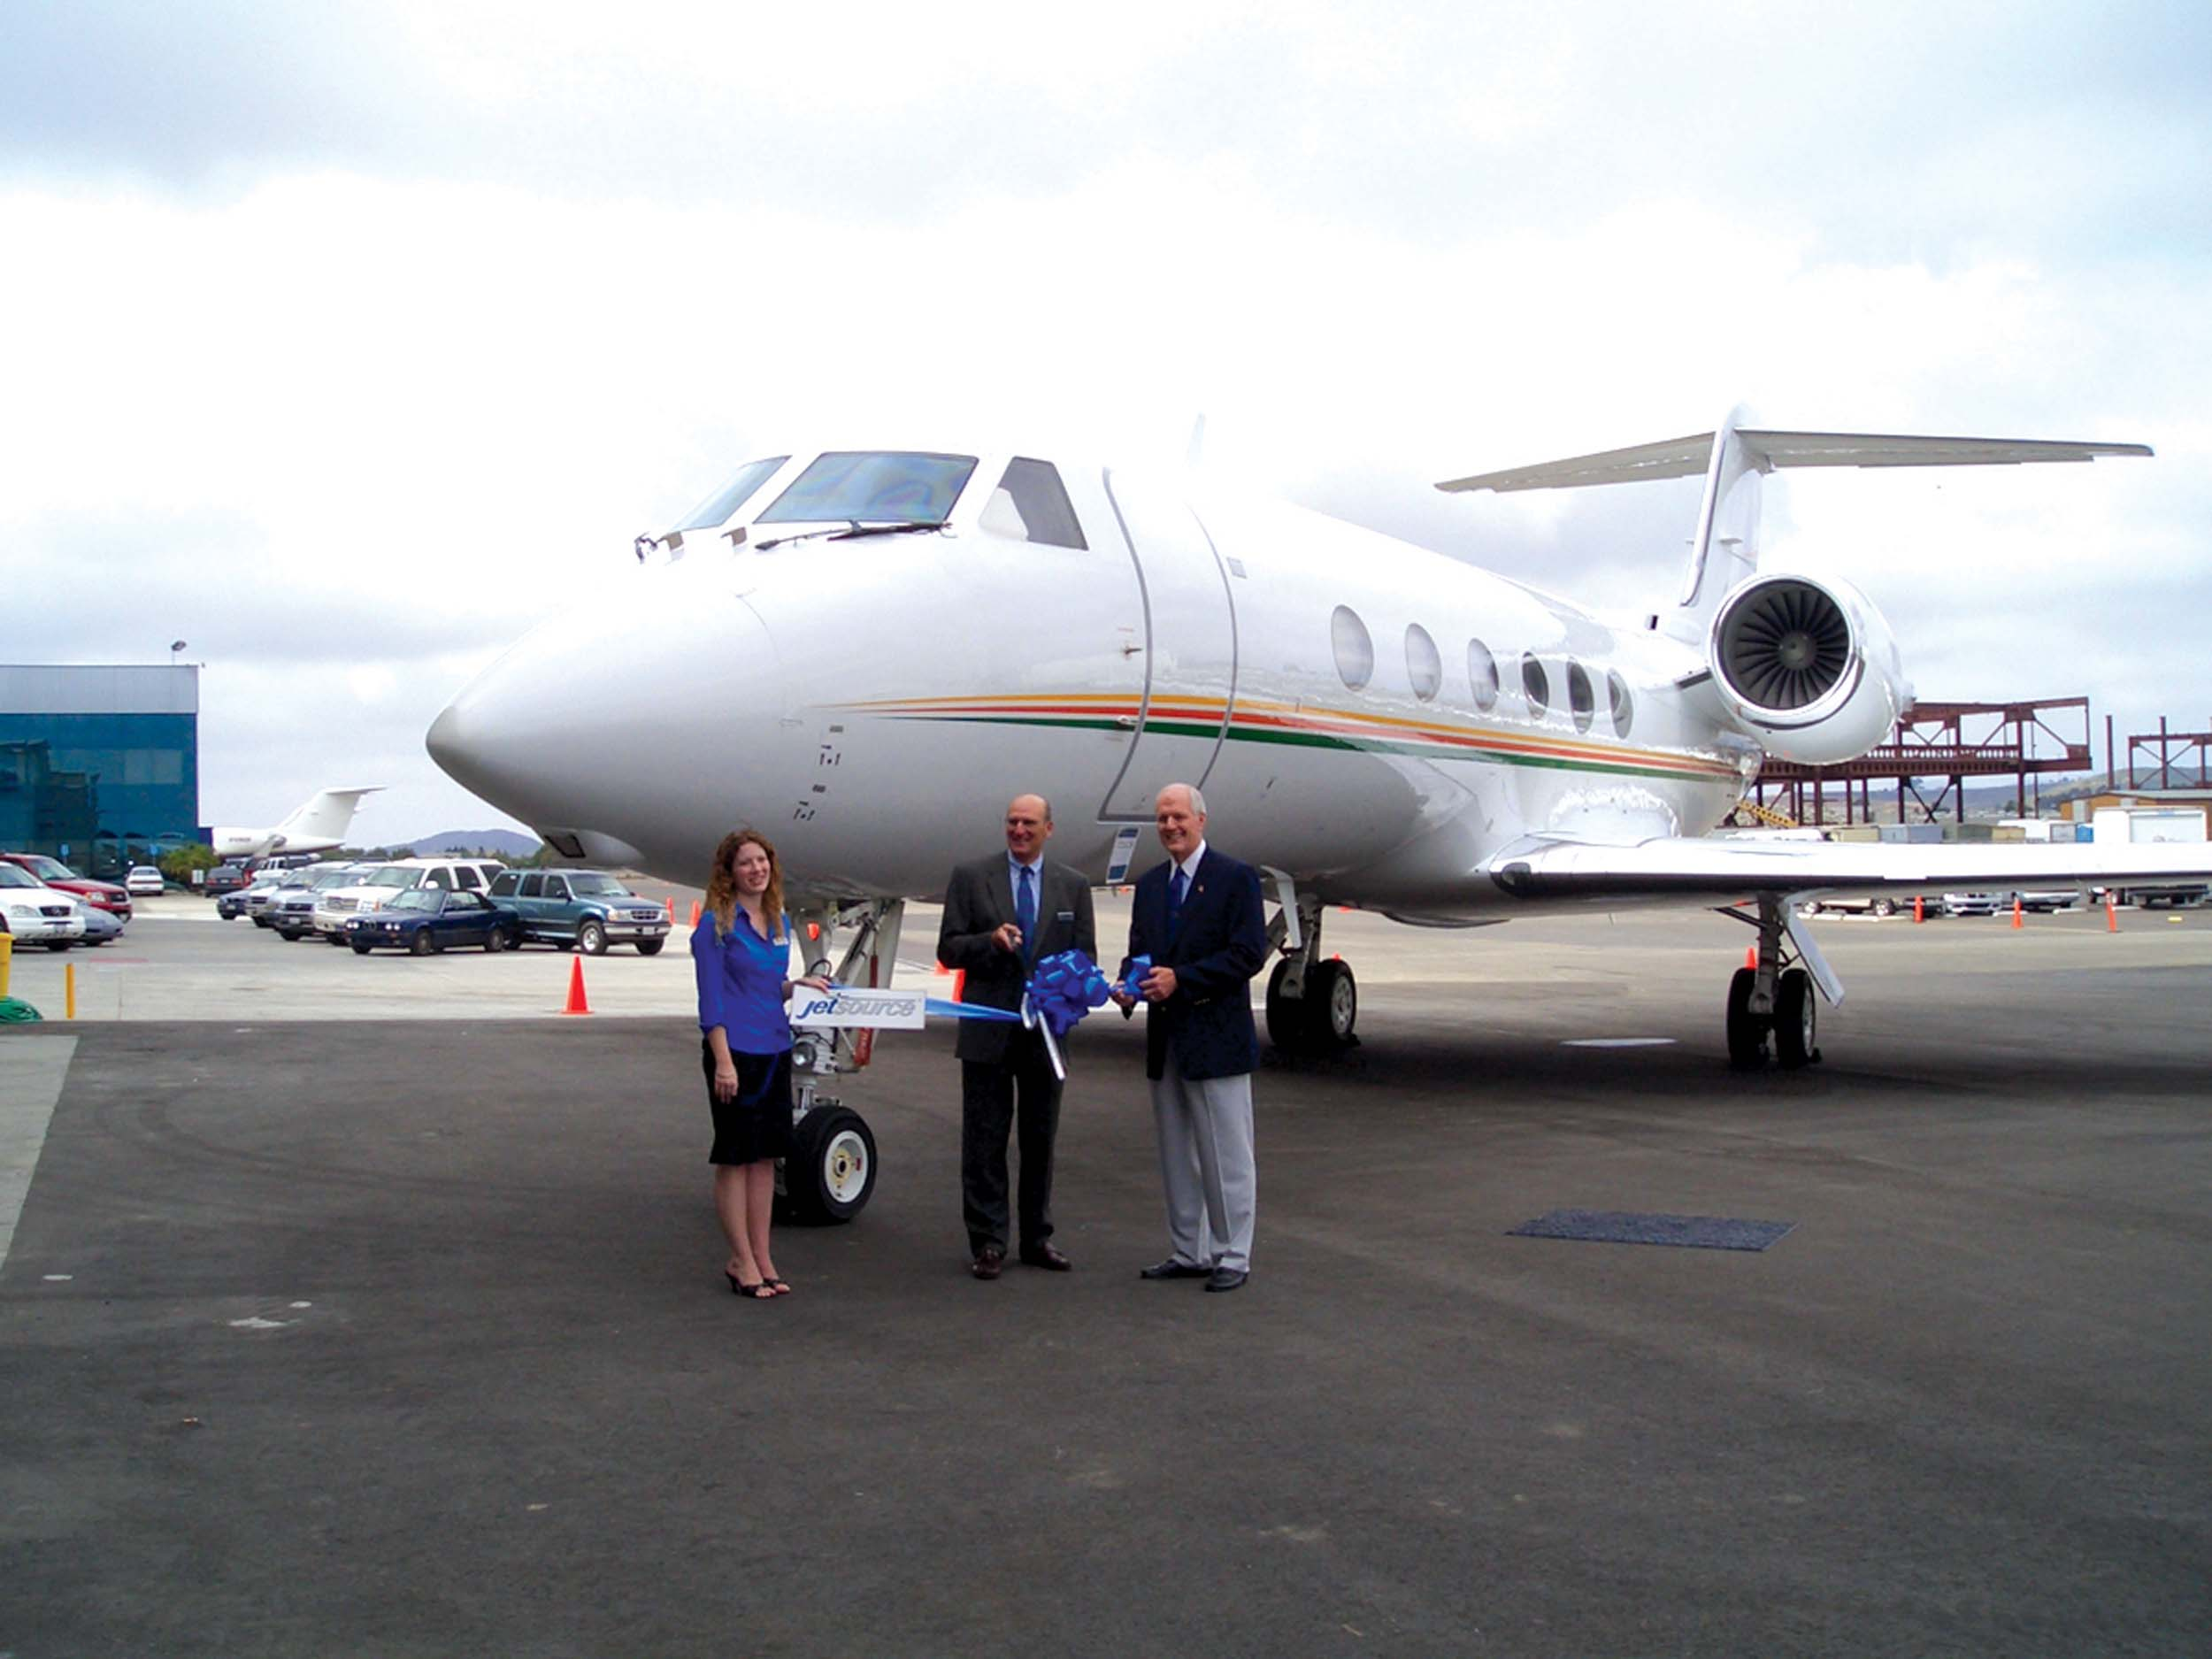 Jet Source Celebrates New Business Aviation Center with Open House Celebration